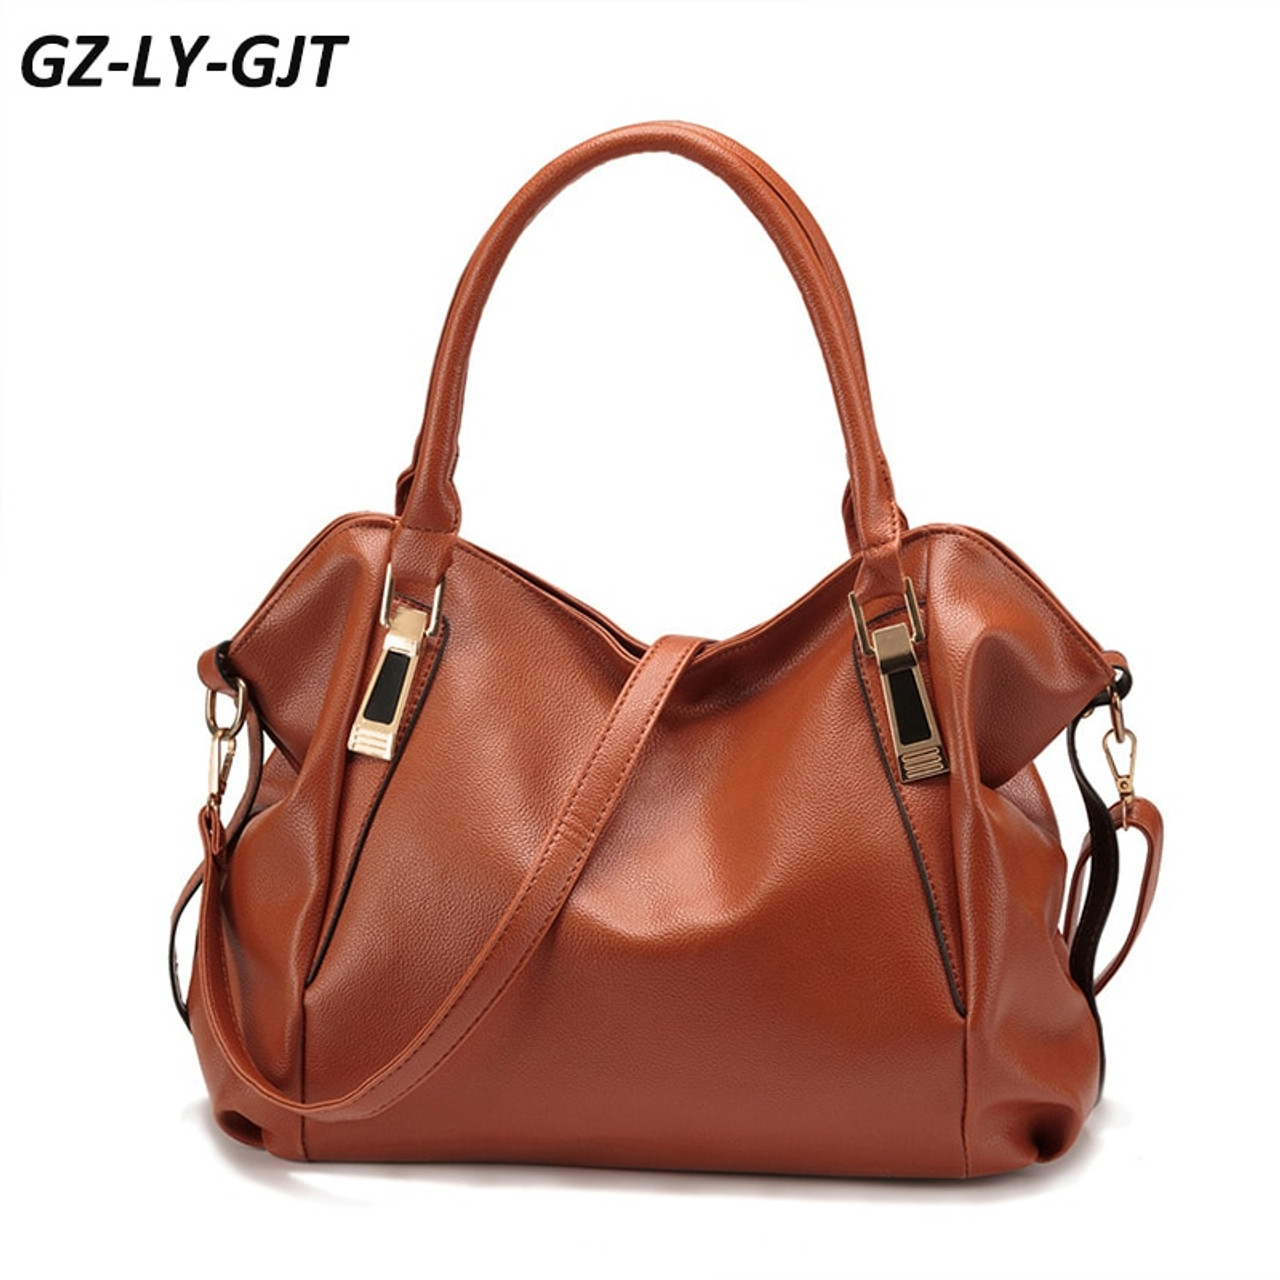 4776f6a06482 GZ-LY-GJT Fashion Designer Handbag Female PU Leather Bag Office Ladies  Portable Shoulder Bag Sac A Main For Women Messenger Bags - OnshopDeals.Com